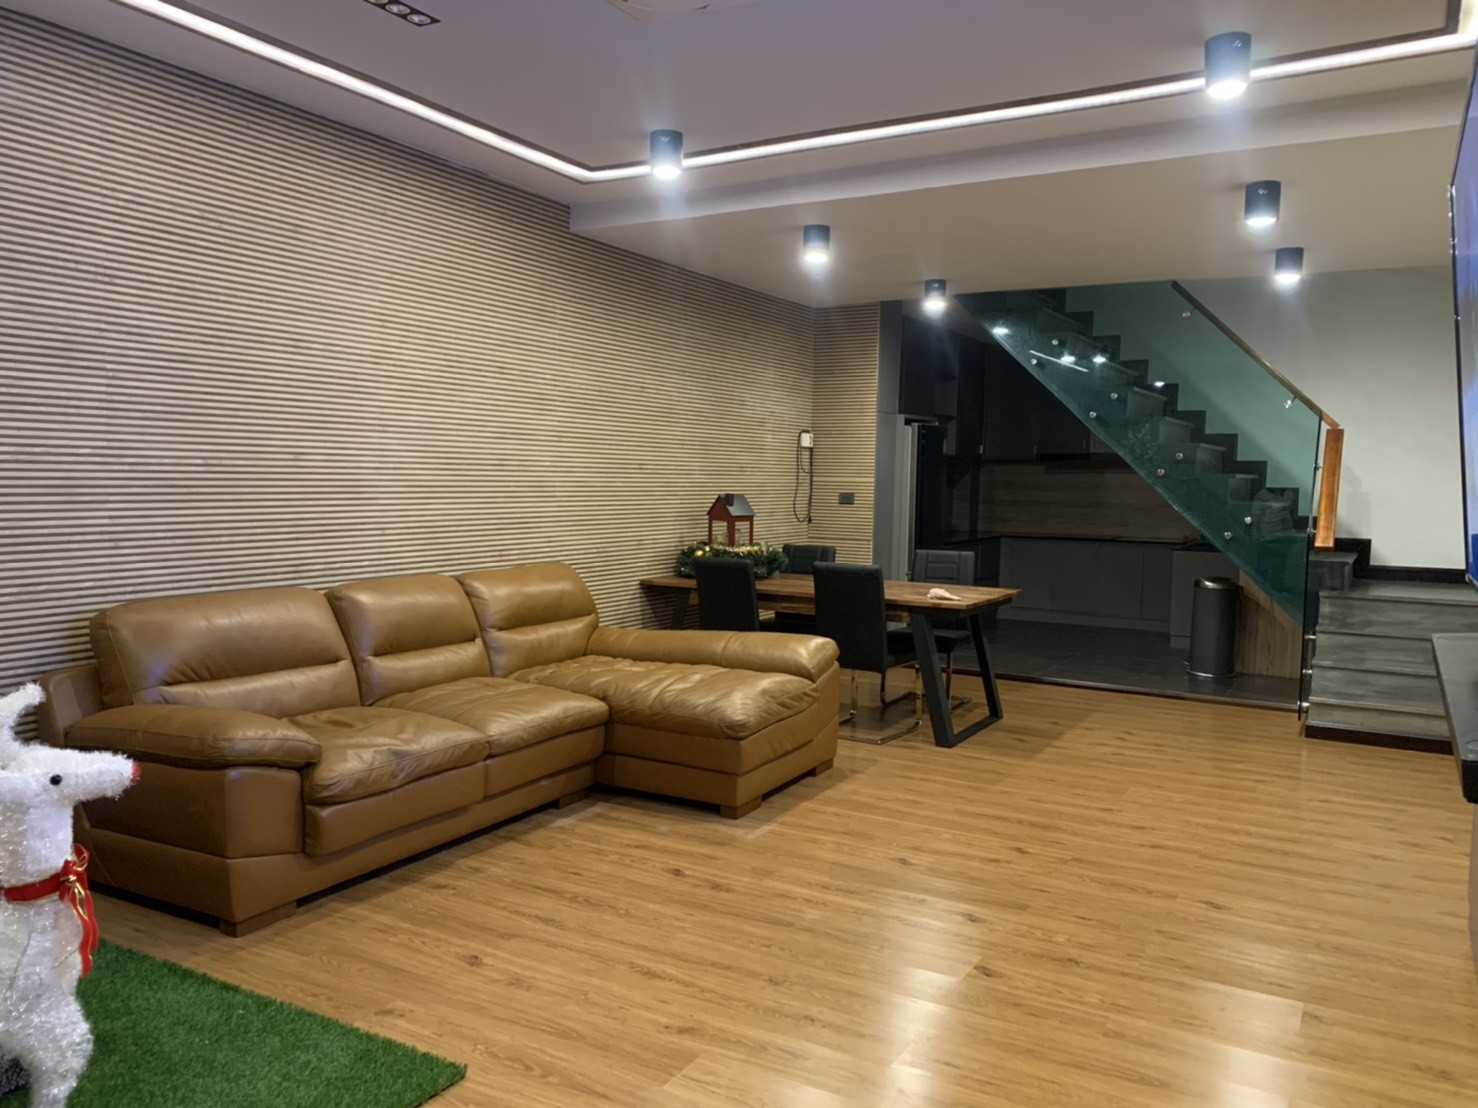 LTH3583 – Townhouse FOR RENT in Sathorn area 4 Beds 3 Baths size 300 SQ.M. Nearby BTS Saint Louis station ONLY 80k/Month